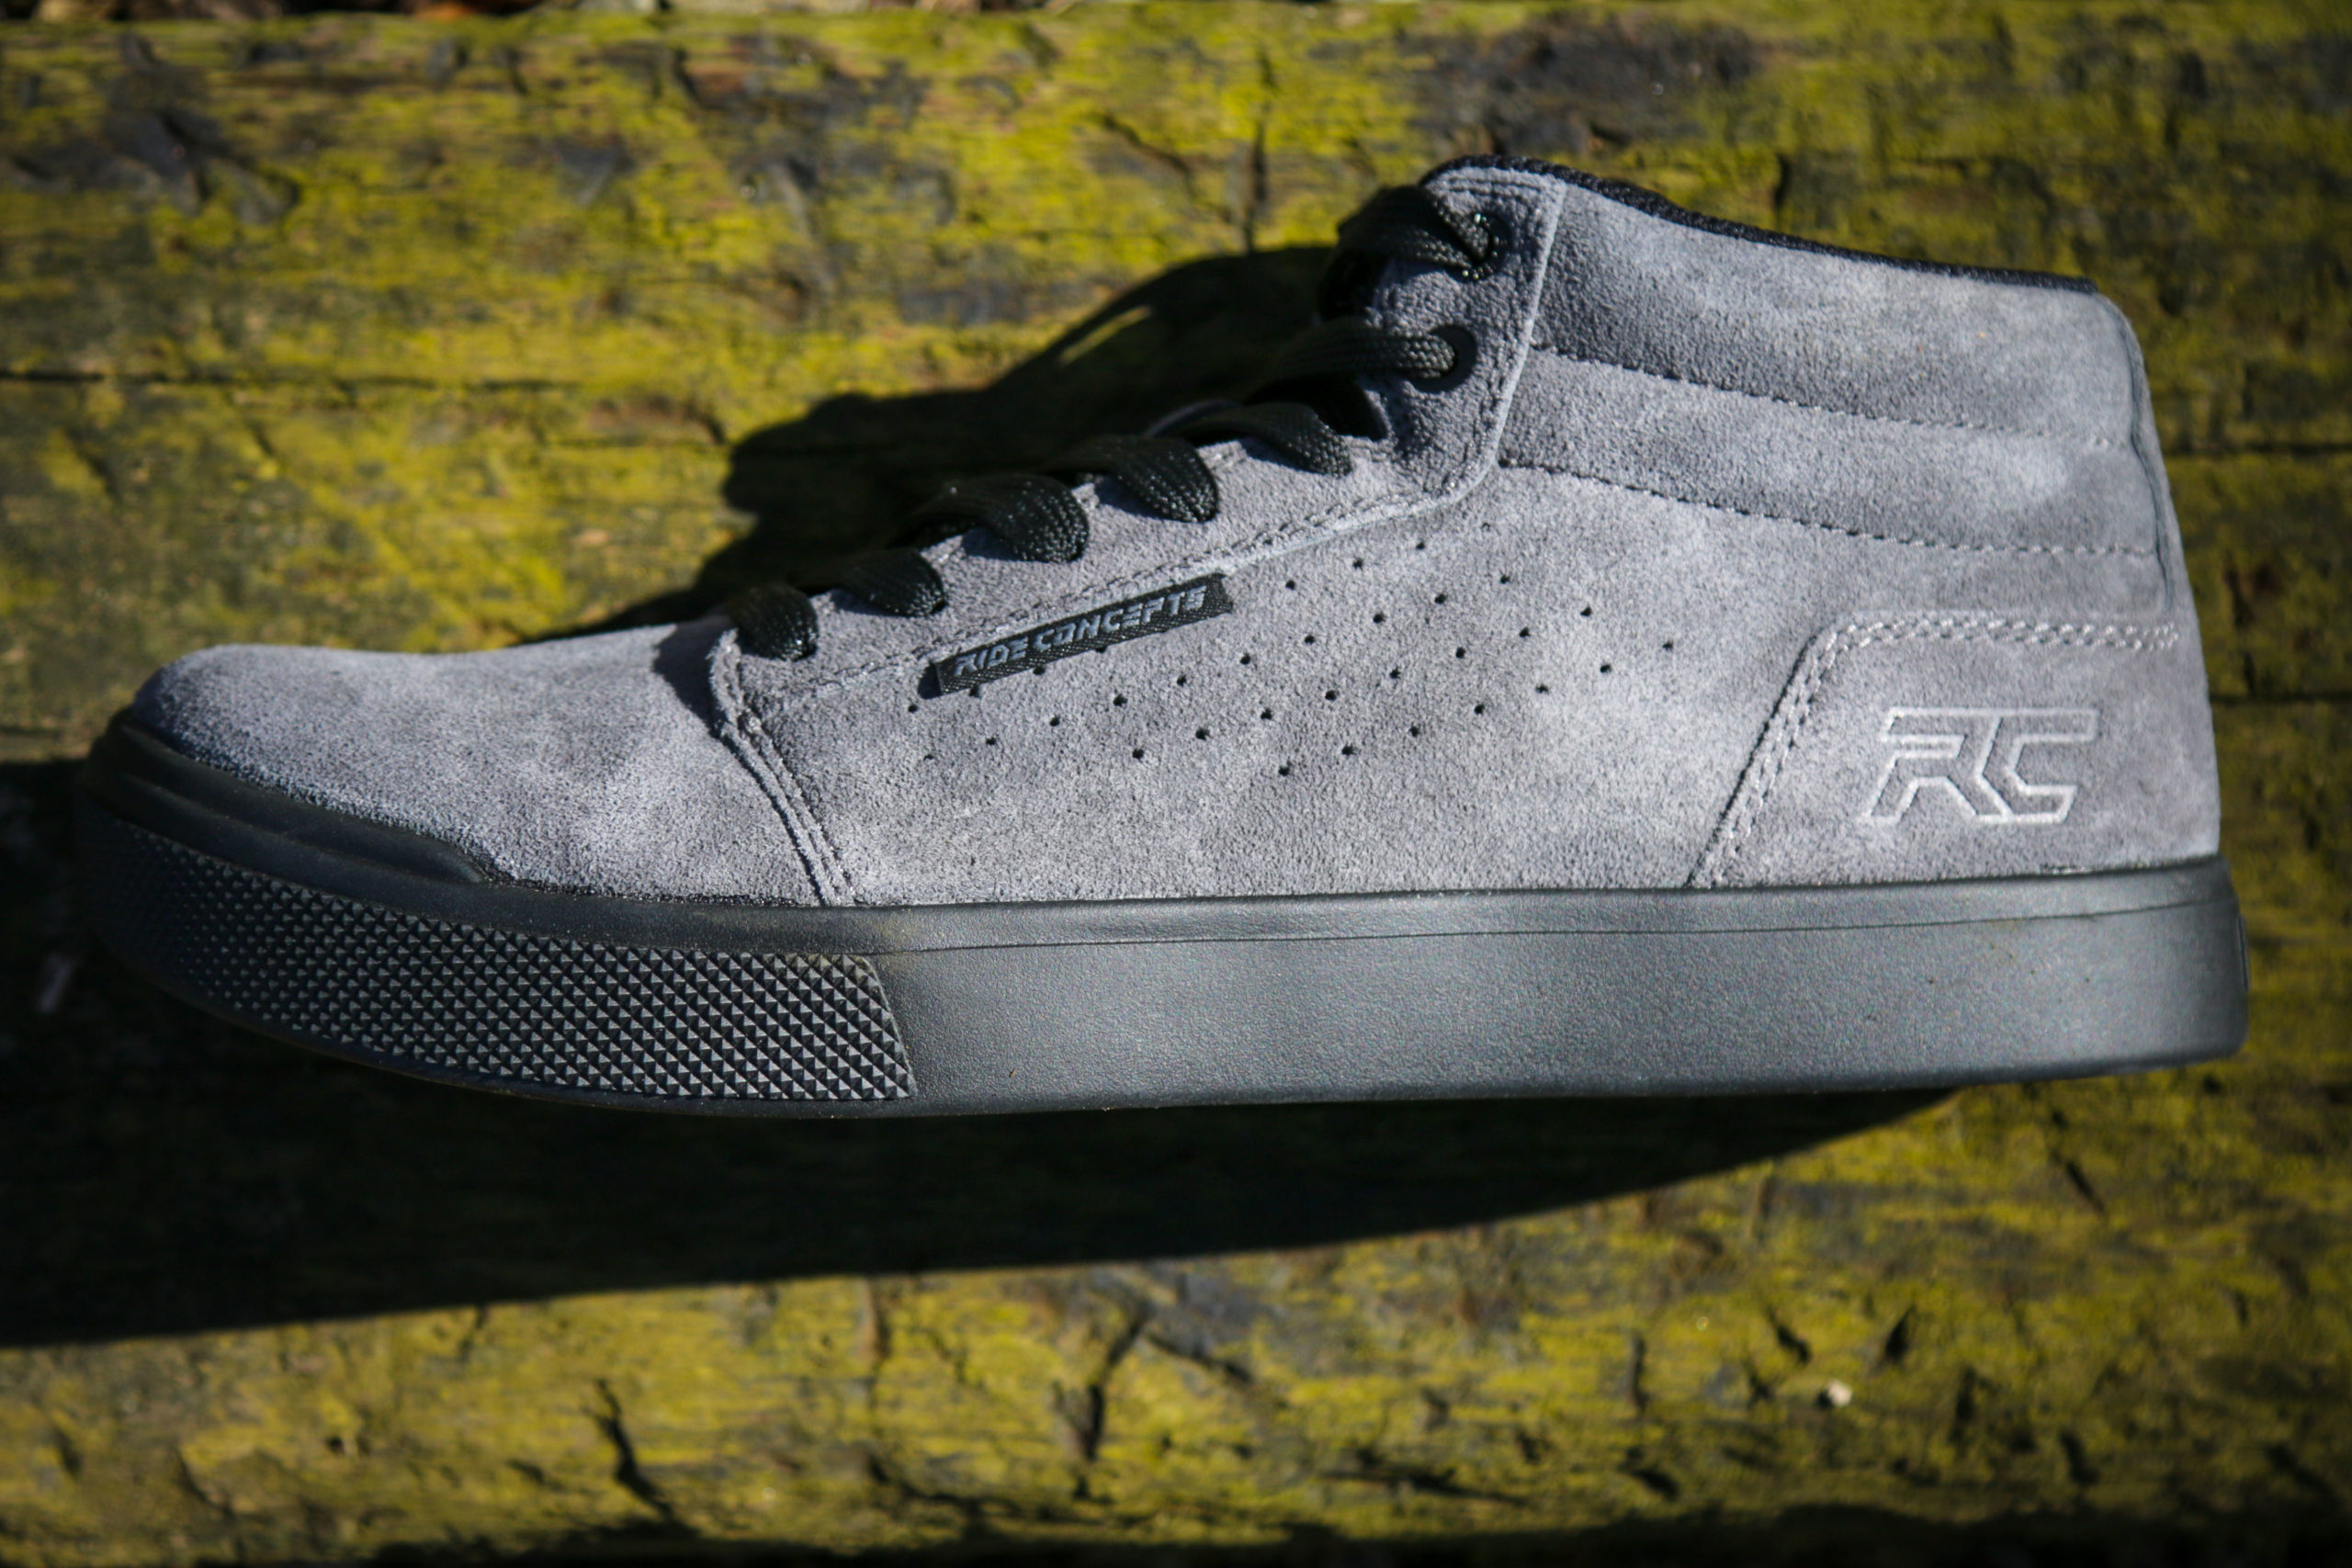 Ride Concepts Vice Mid shoe side